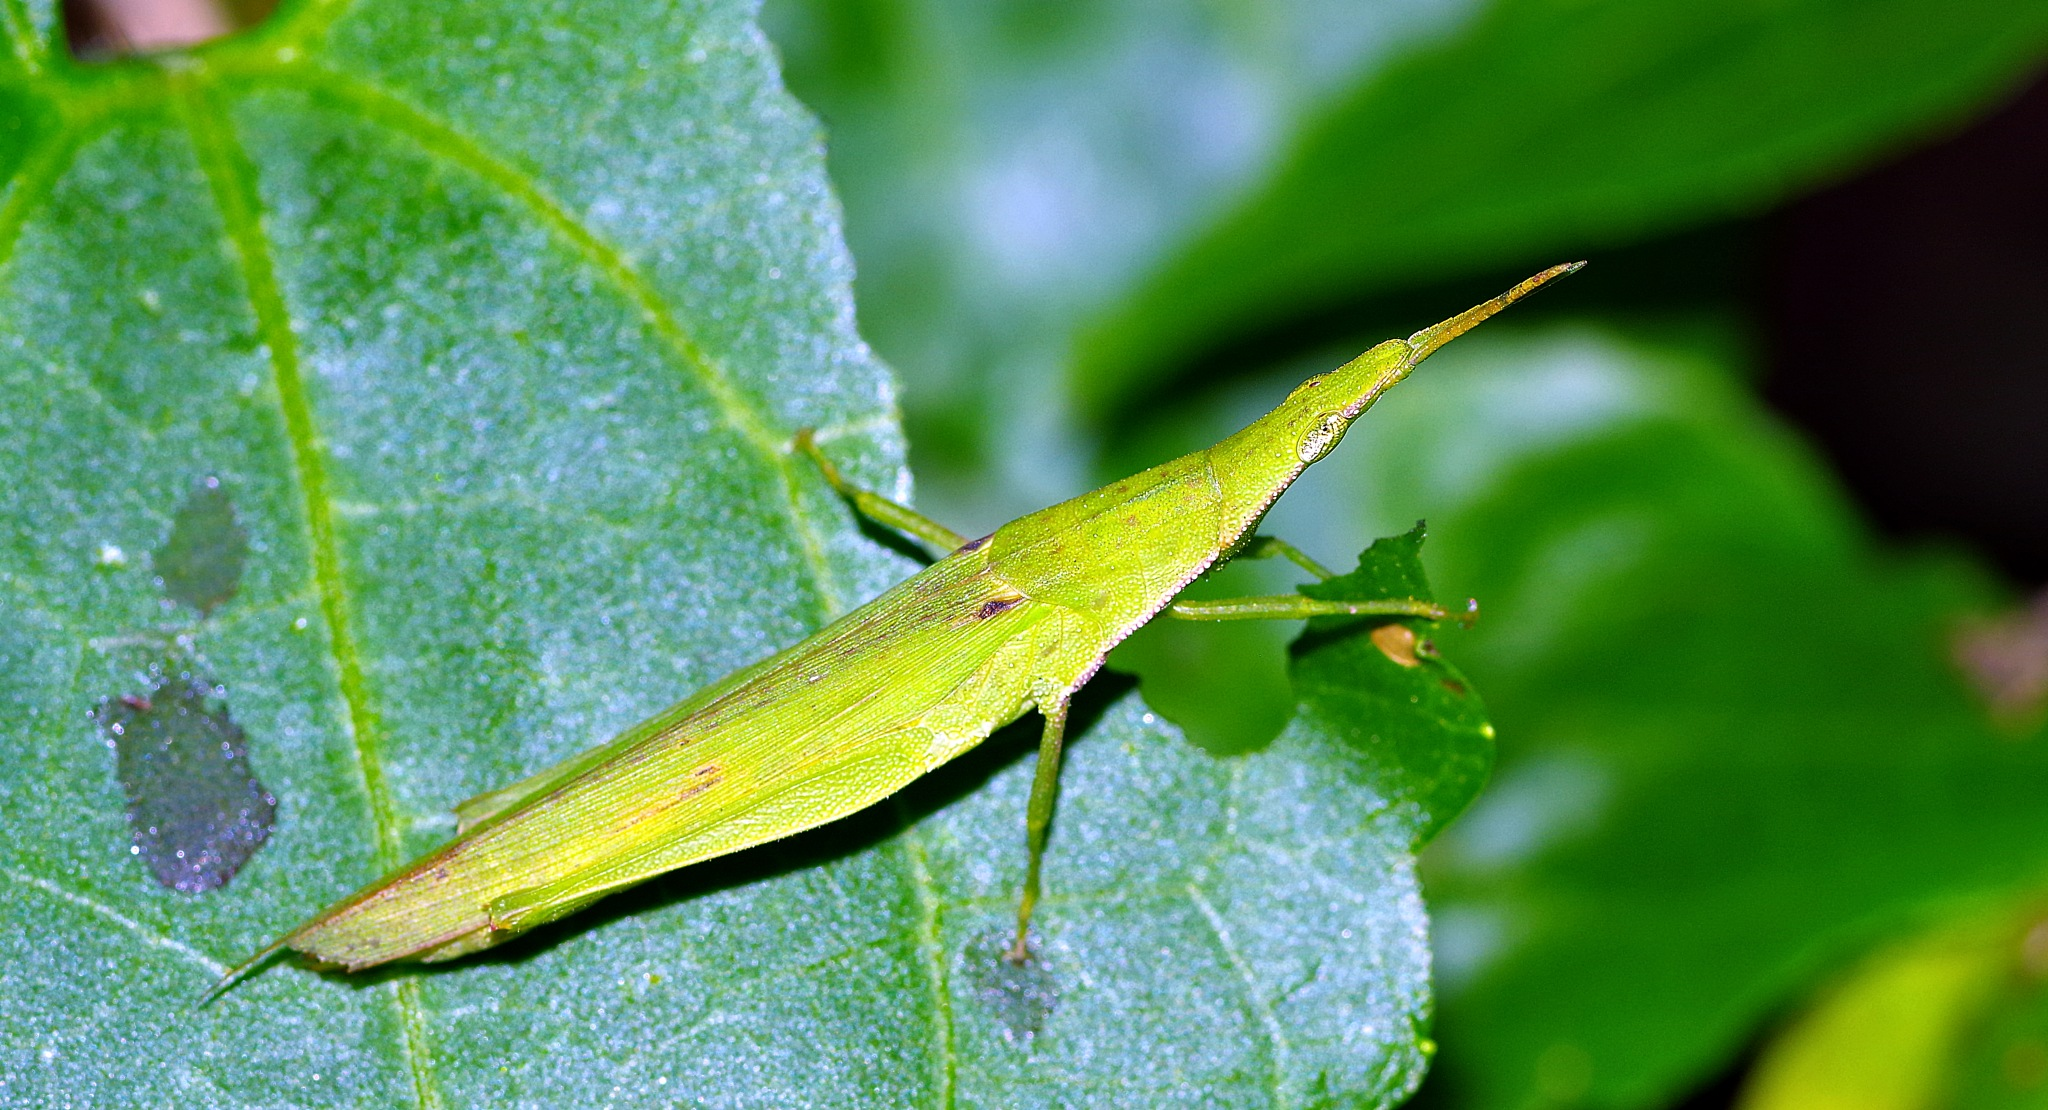 Slant faced or long nosed grasshopper by Turbo